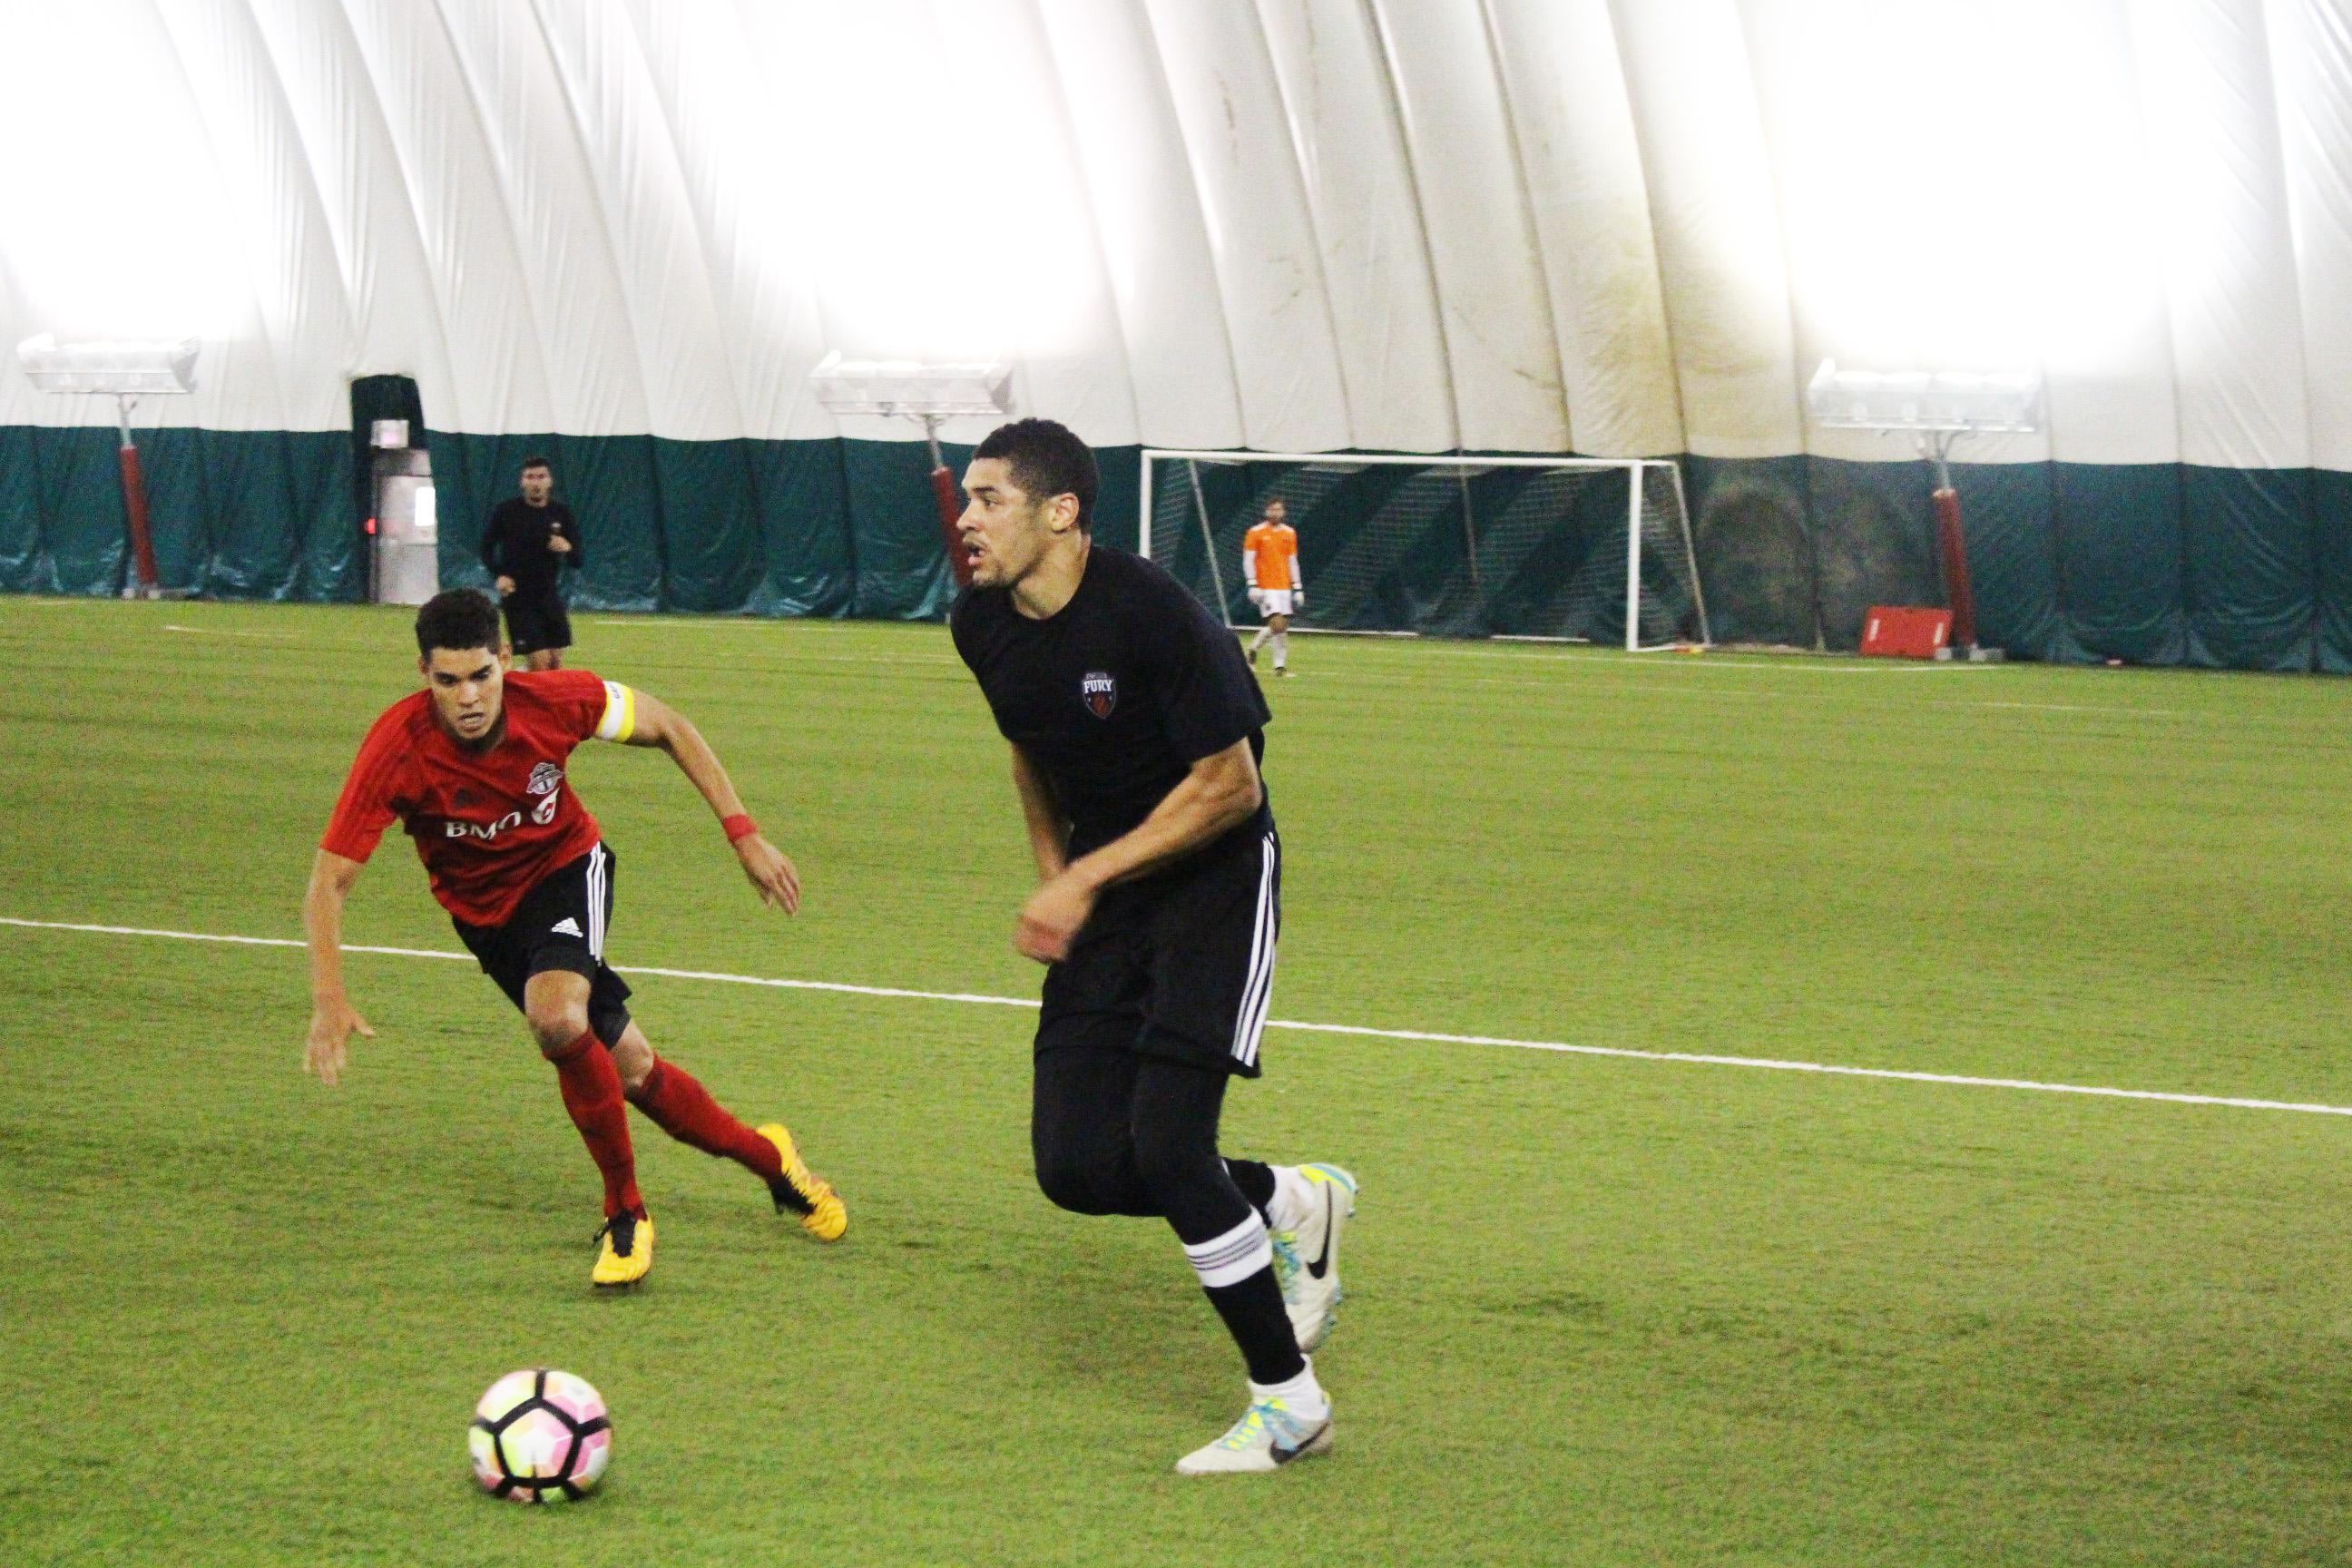 Onua Obasi, with the ball, looking for an option, with a Toronto defender near him